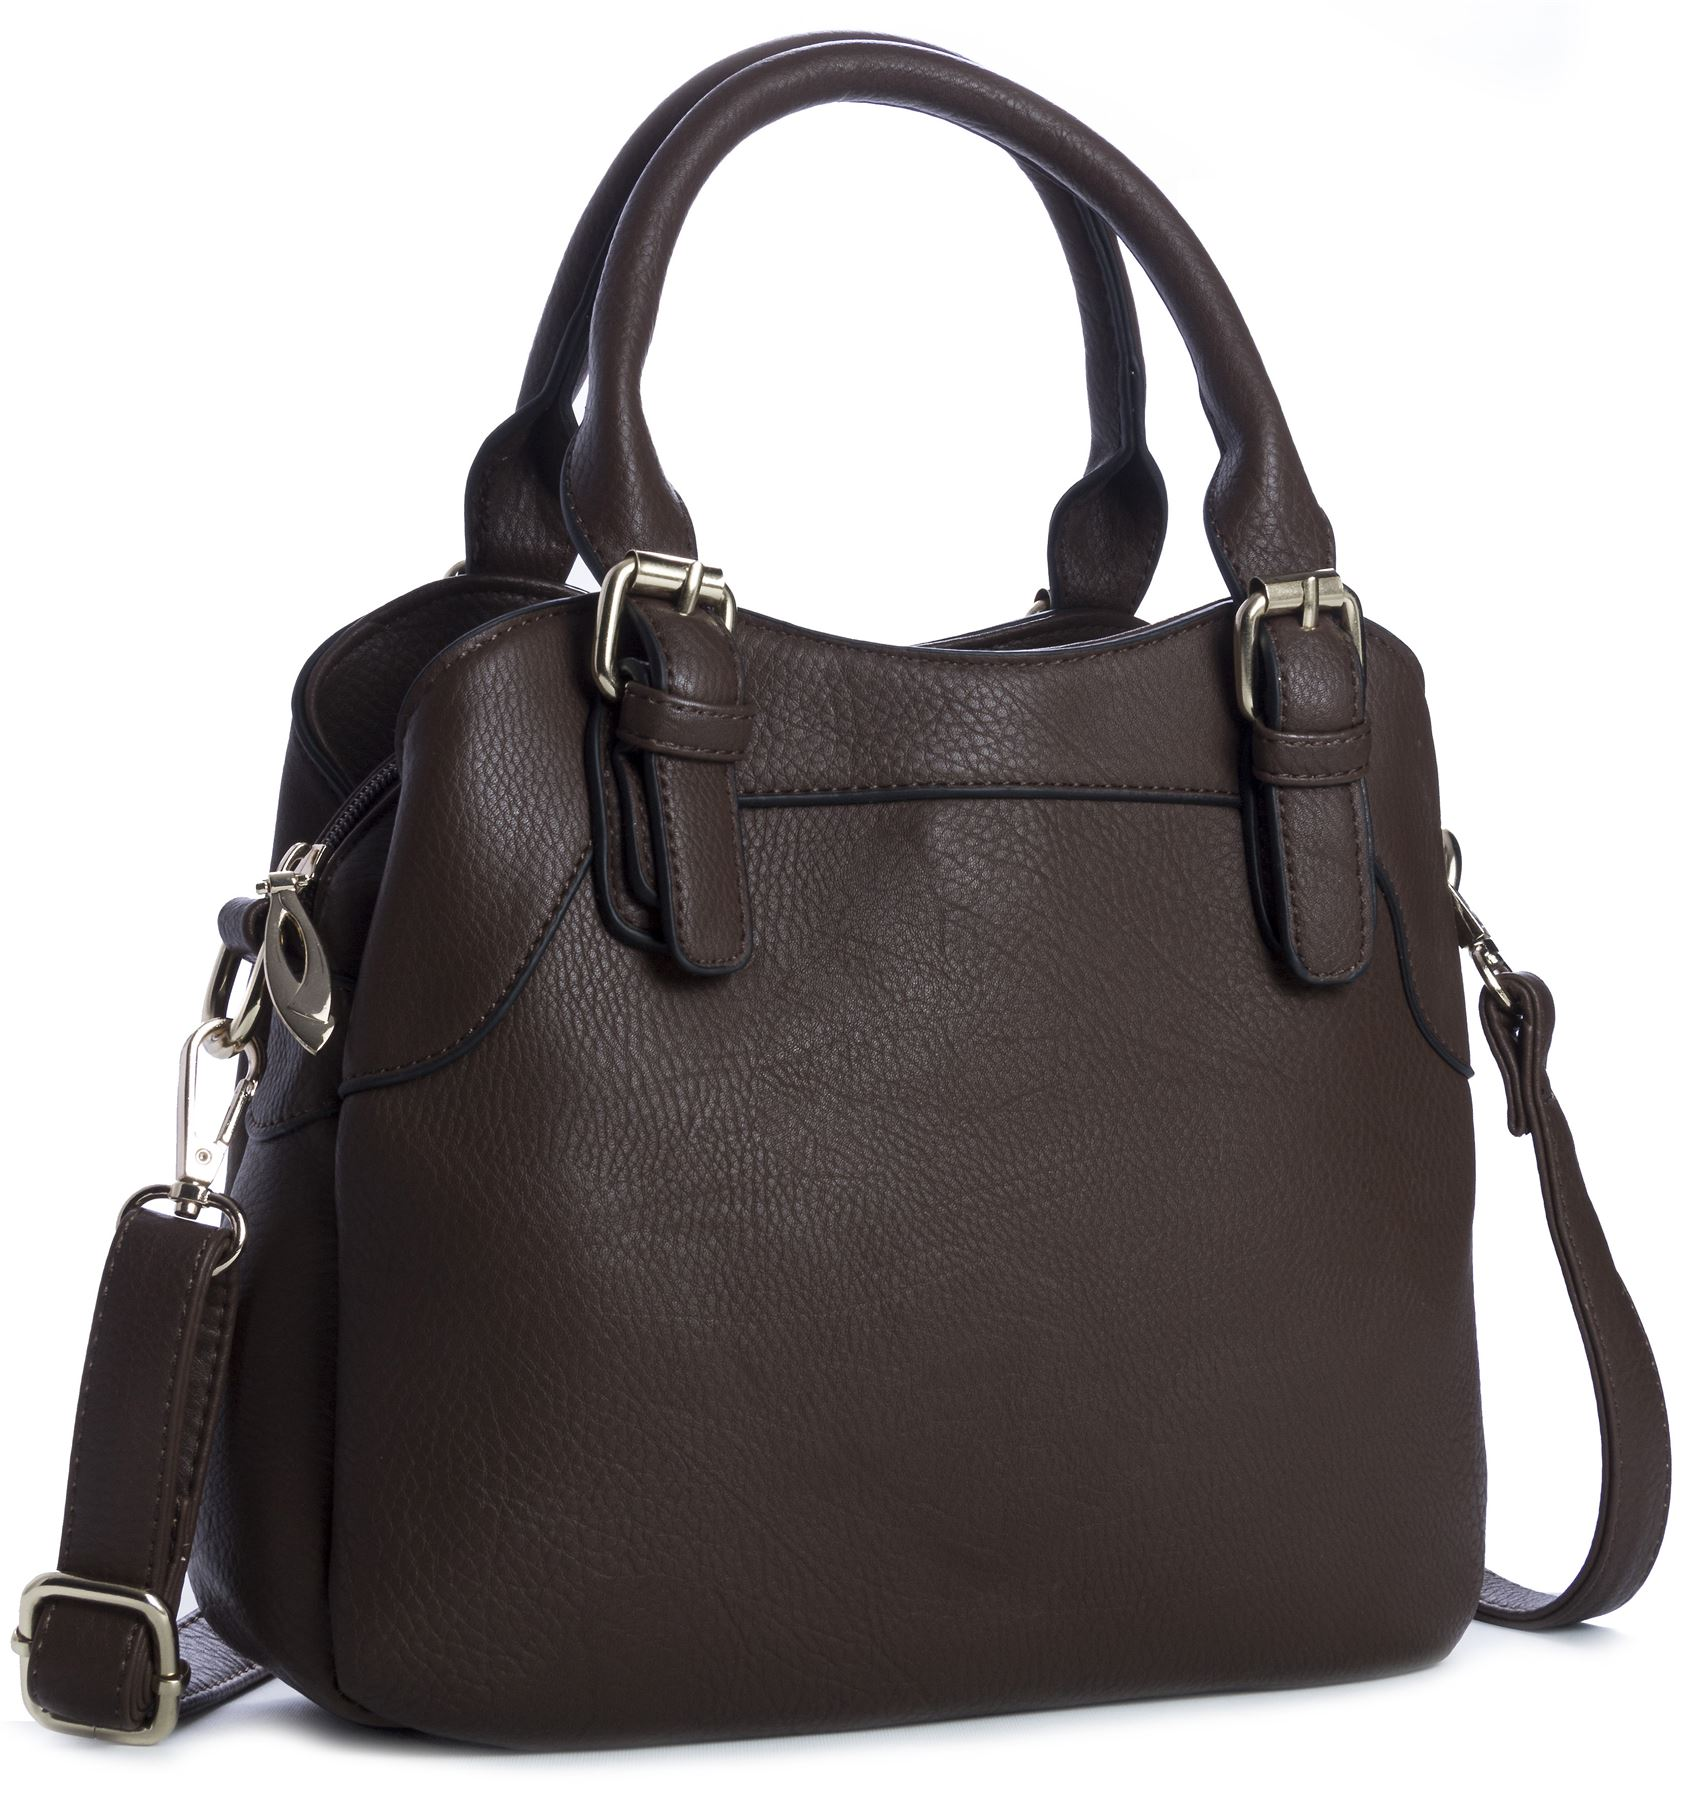 Online shopping for Shoes & Bags from a great selection of Women's Handbags, Men's Bags, Girls' Handbags, Boys' Bags & more at everyday low prices.